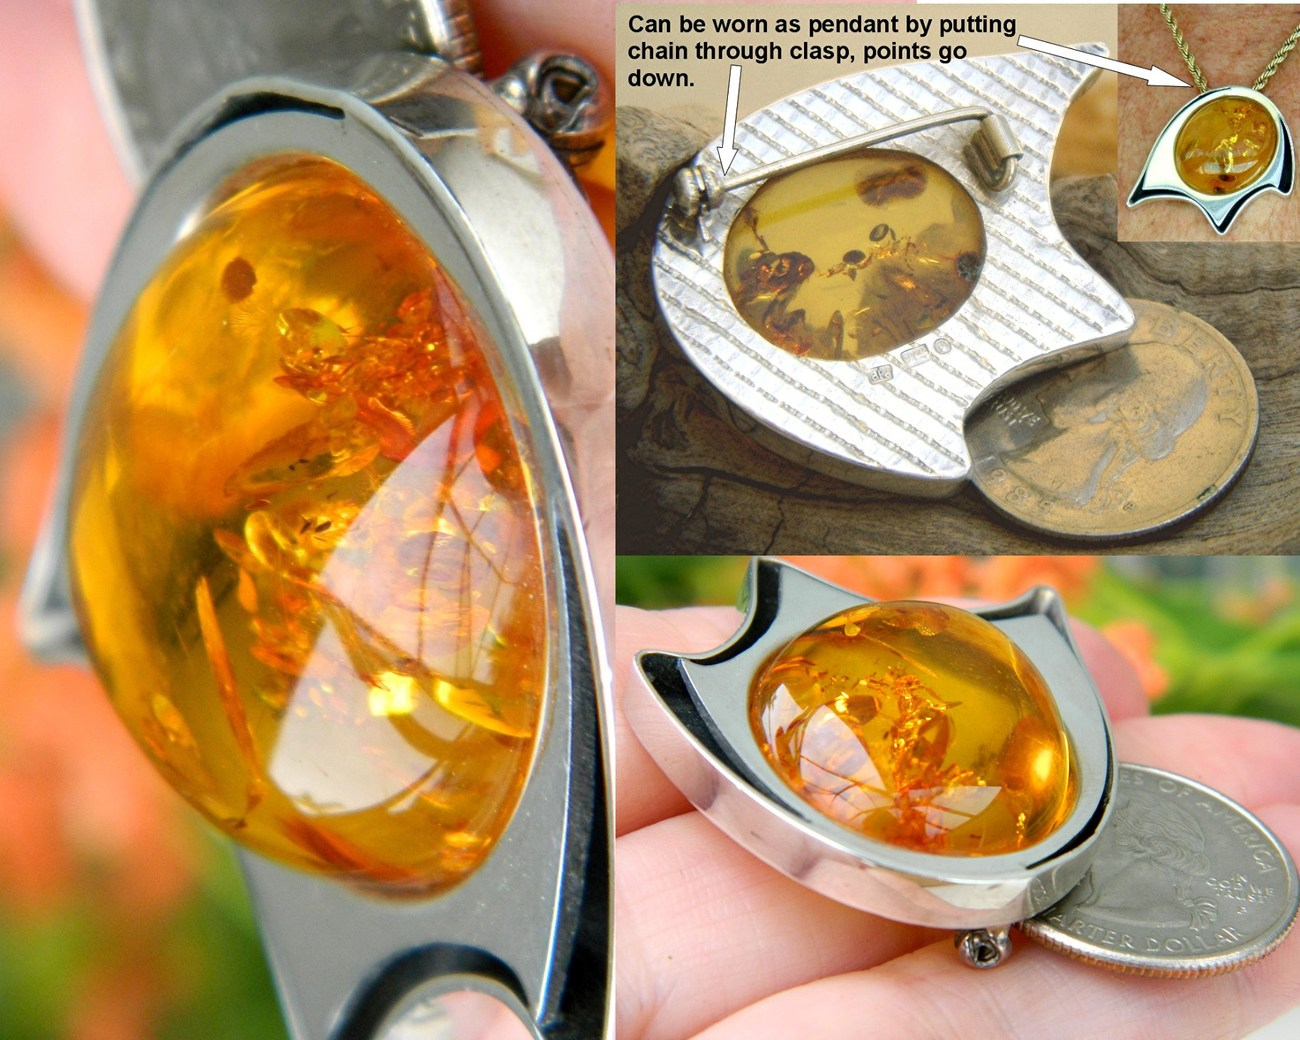 Amber_modernist_pin_brooch_sterling_silver_hallmarked_poland